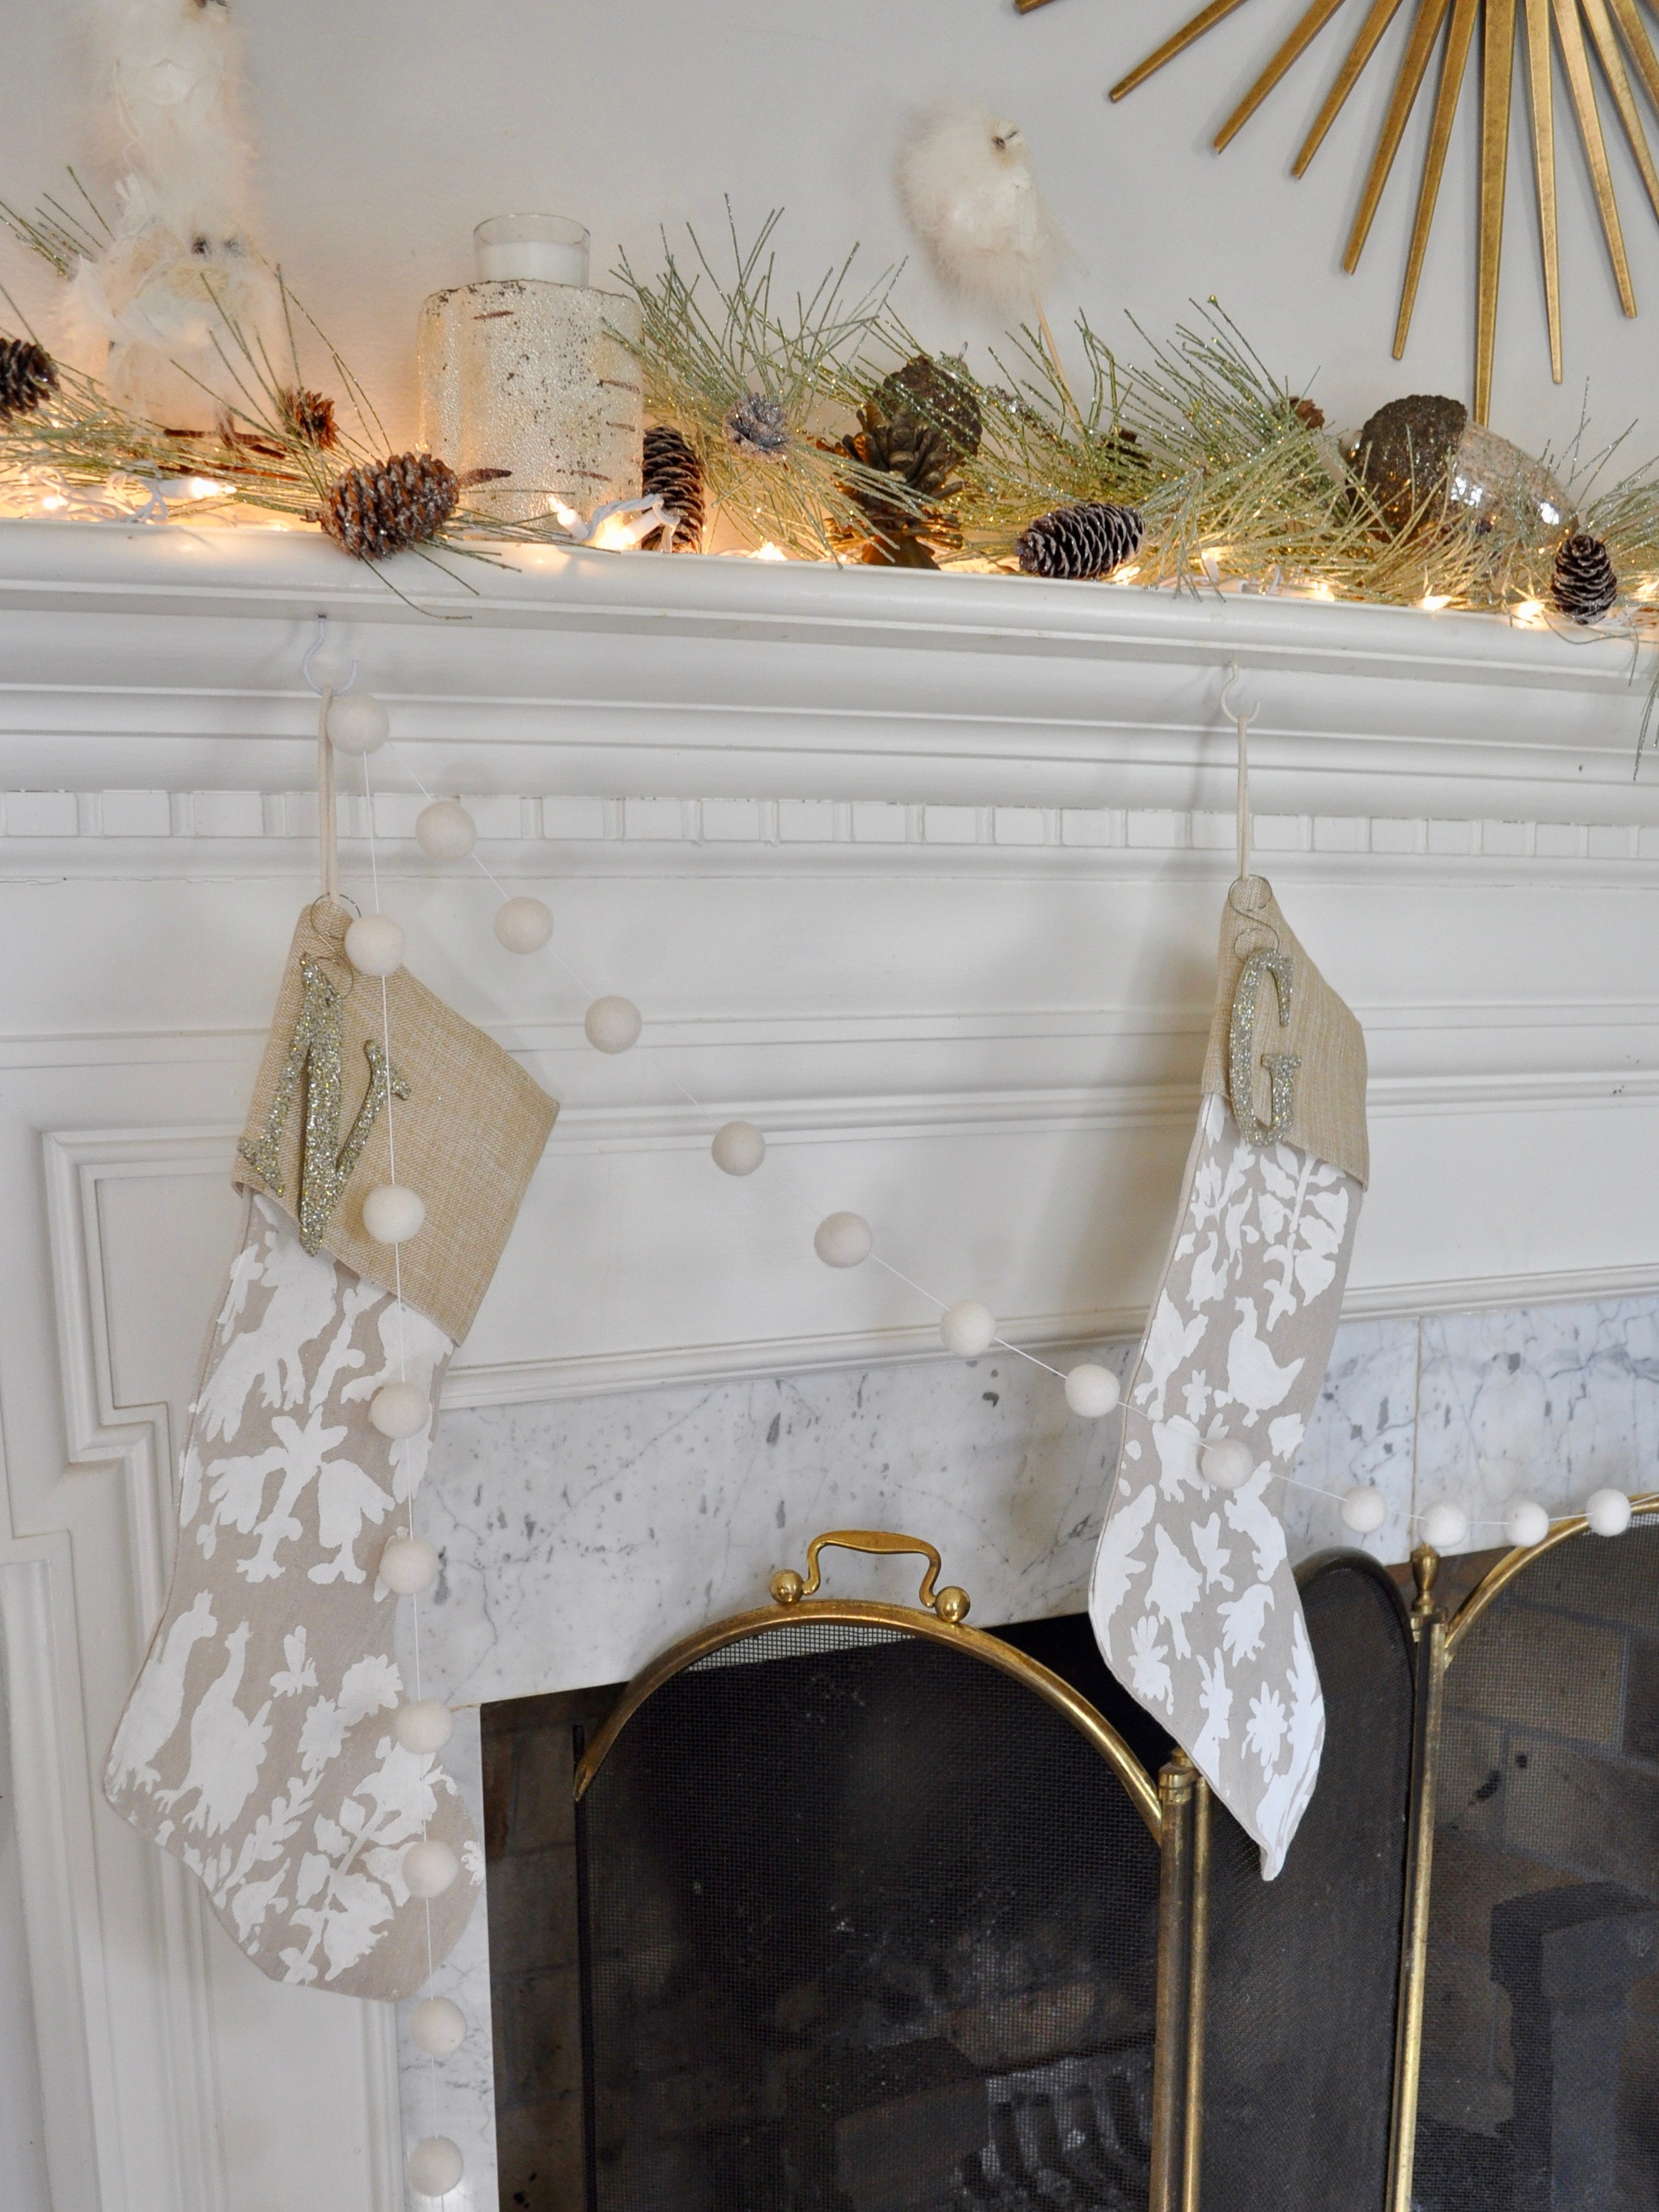 The    stockings    were hung by the chimney with care…